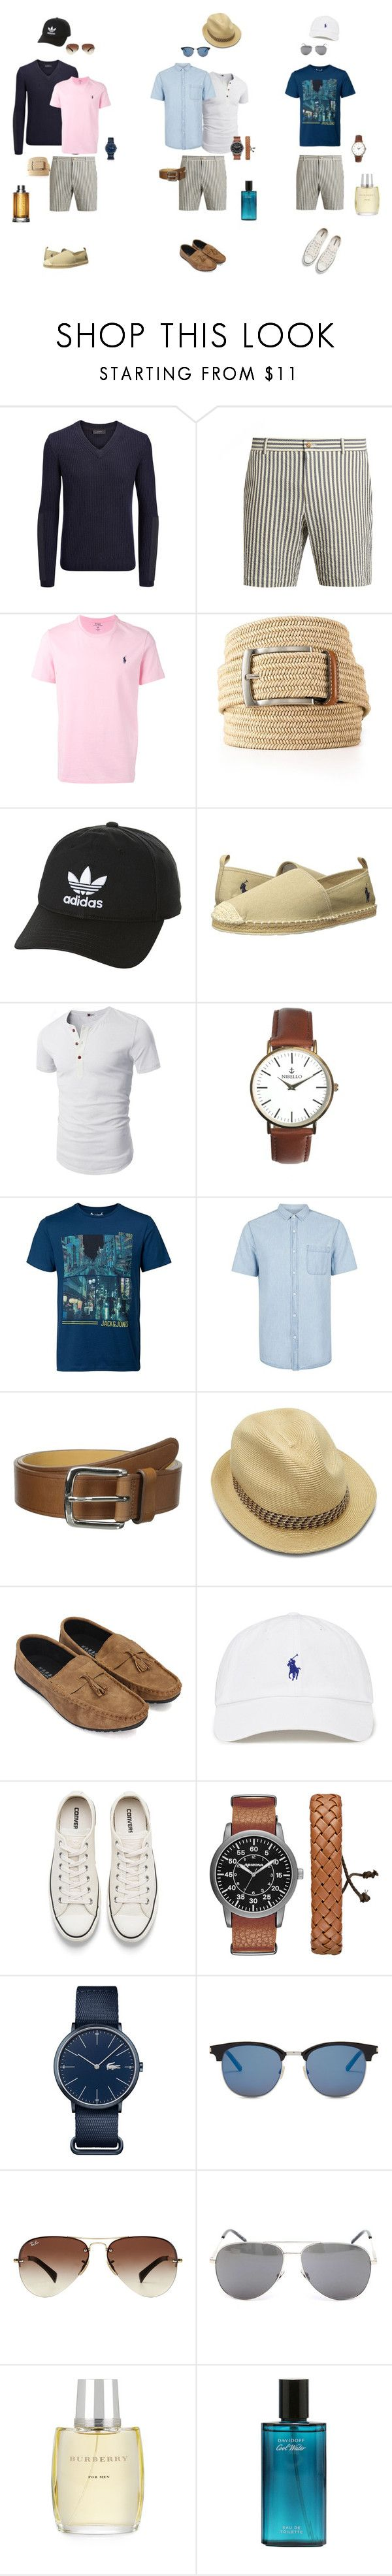 """""""one piece, many ways to wear it"""" by ulusia-1 ❤ liked on Polyvore featuring Joseph, De Bonne Facture, Polo Ralph Lauren, The Men's Store, adidas Originals, Nibello, Jack & Jones, Topman, Cole Haan and Ted Baker"""